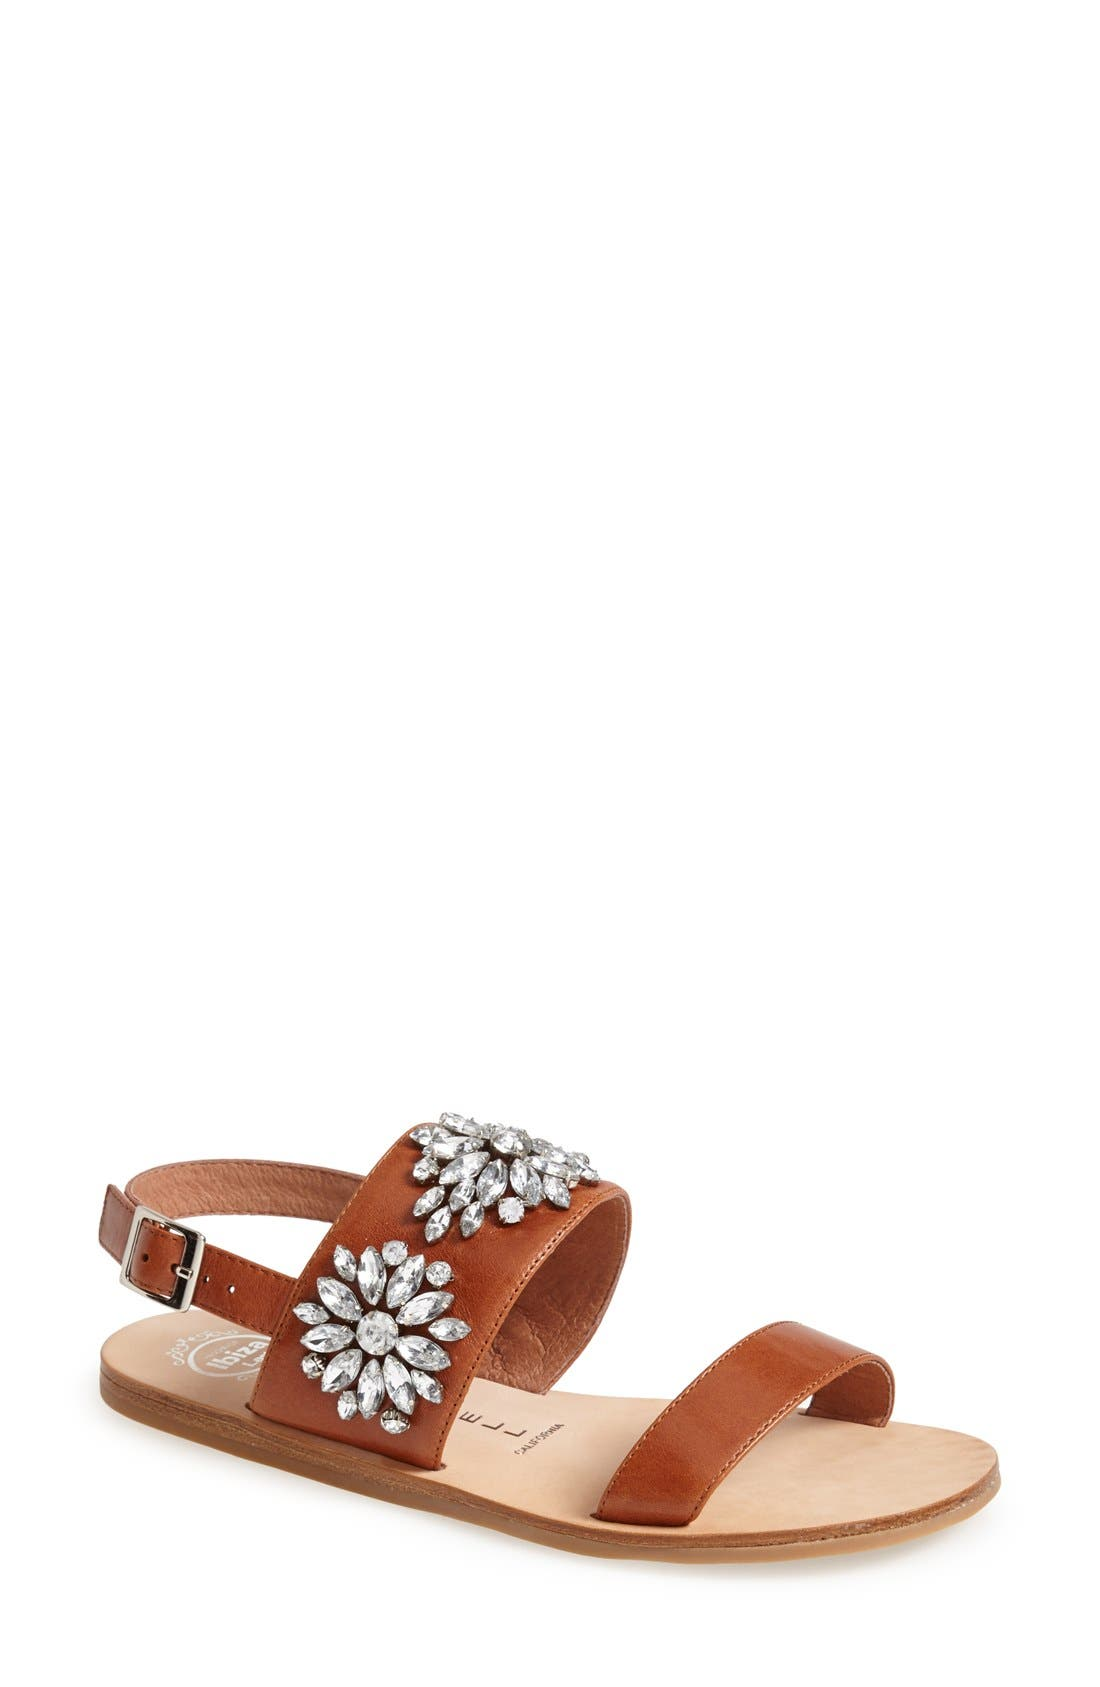 Main Image - Jeffrey Campbell 'Dola' Jeweled Leather Sandal (Women)